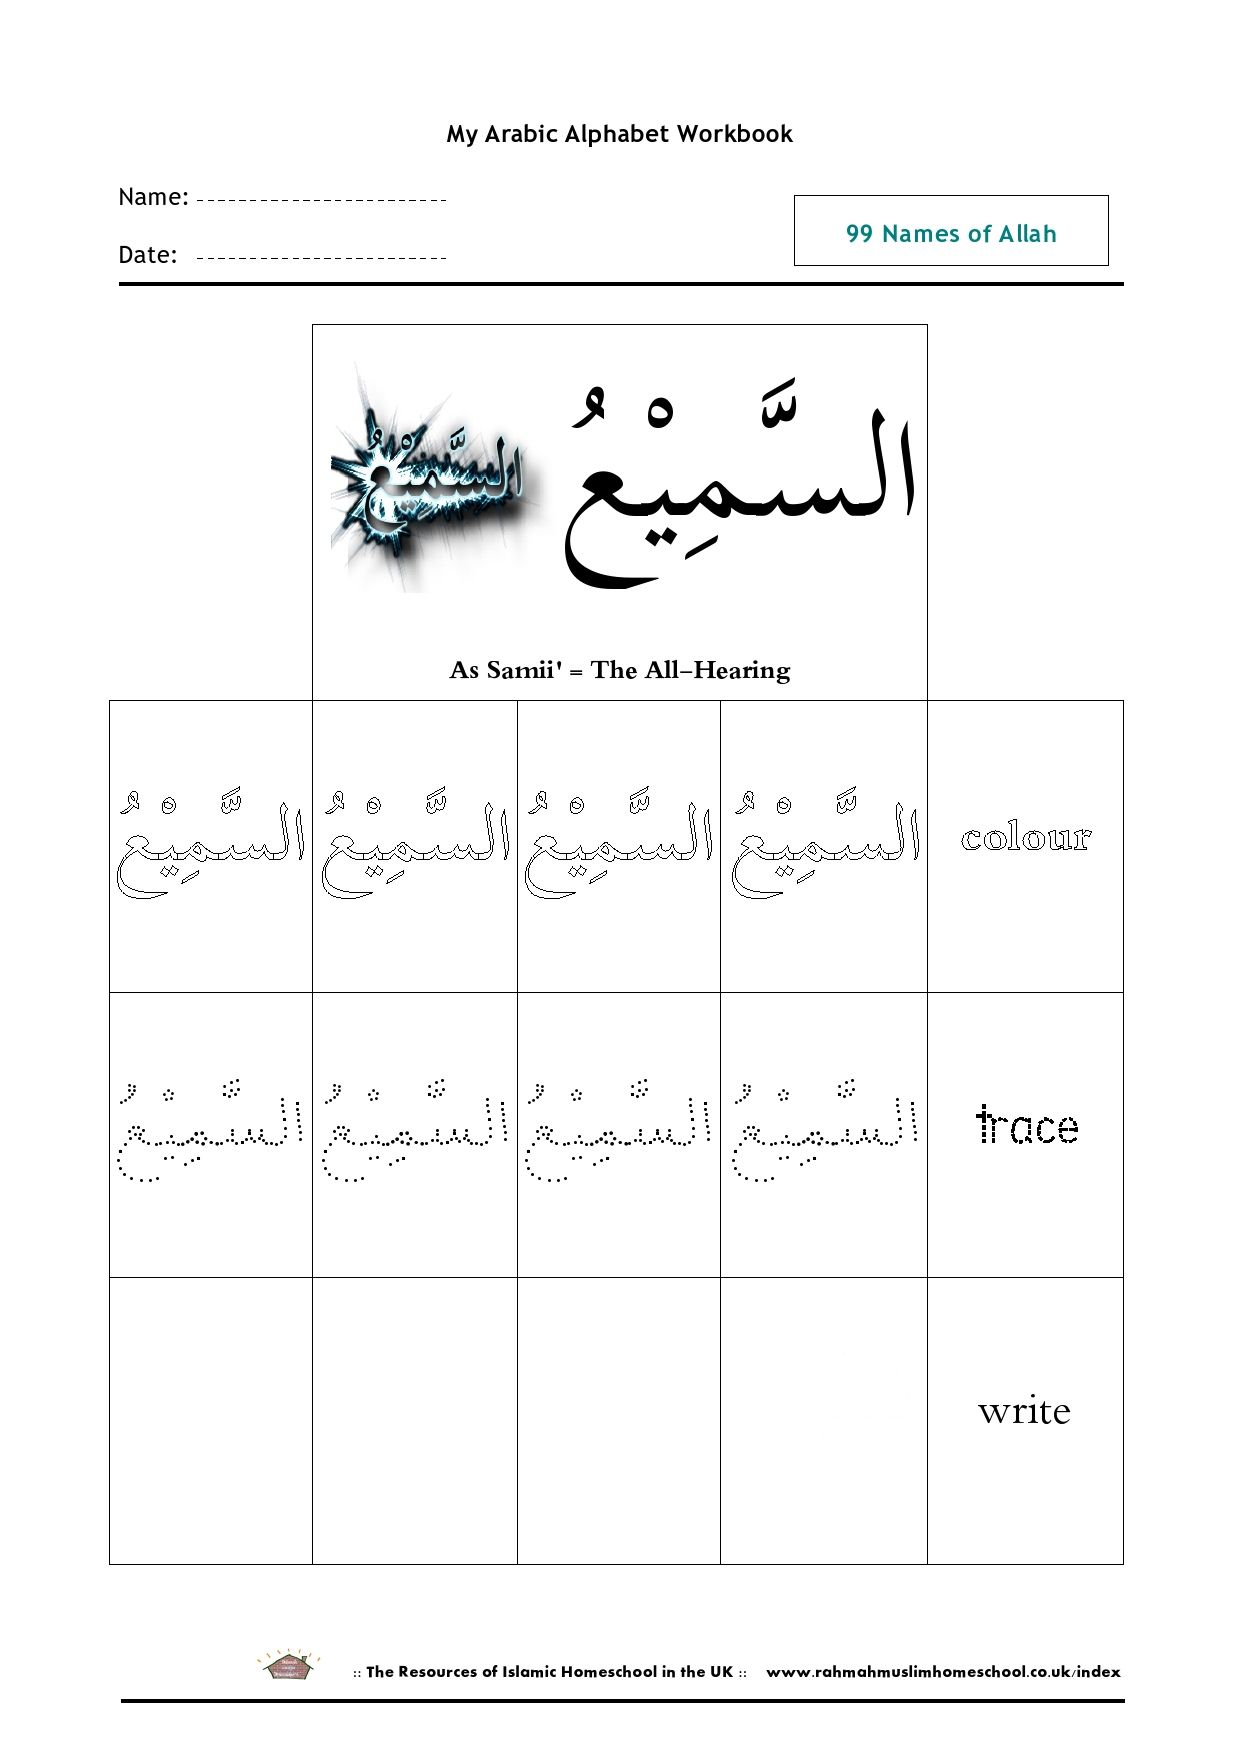 Al samii pdf pinterest worksheets learning arabic and al samii pdf learning arabicislamic studiesalphabet worksheetsarabic calligraphyhomeschooling robcynllc Gallery